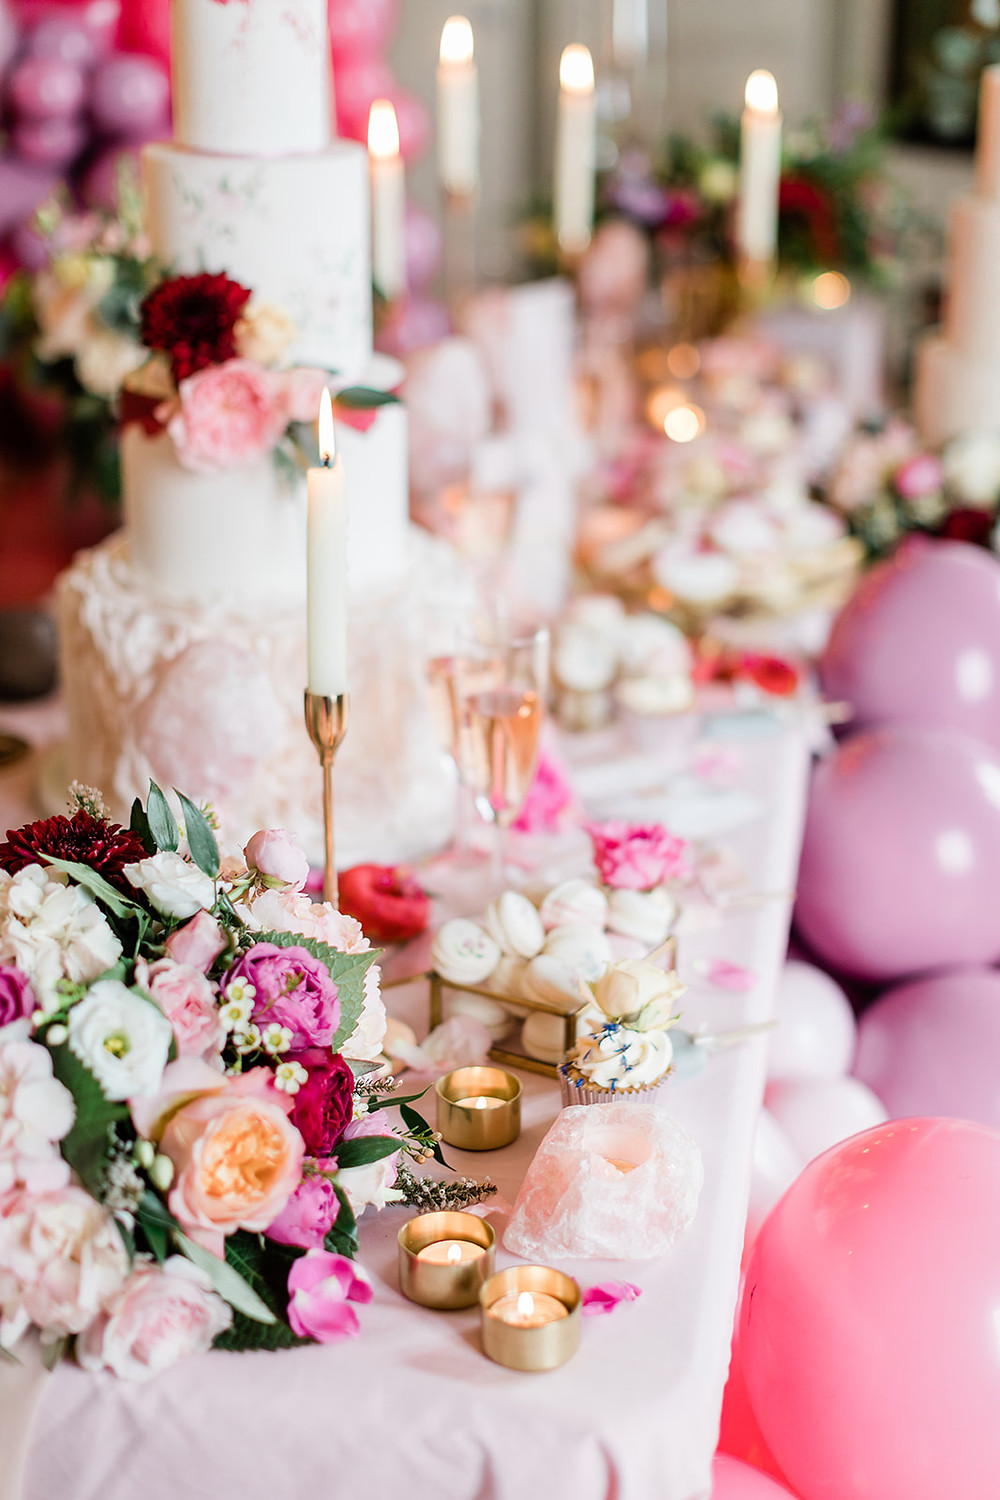 Table Beautifully decorated for a wedding meal with flowers, centrepieces, props in gold and pink. Capheaton Hall Northumberland wedding cake balloons